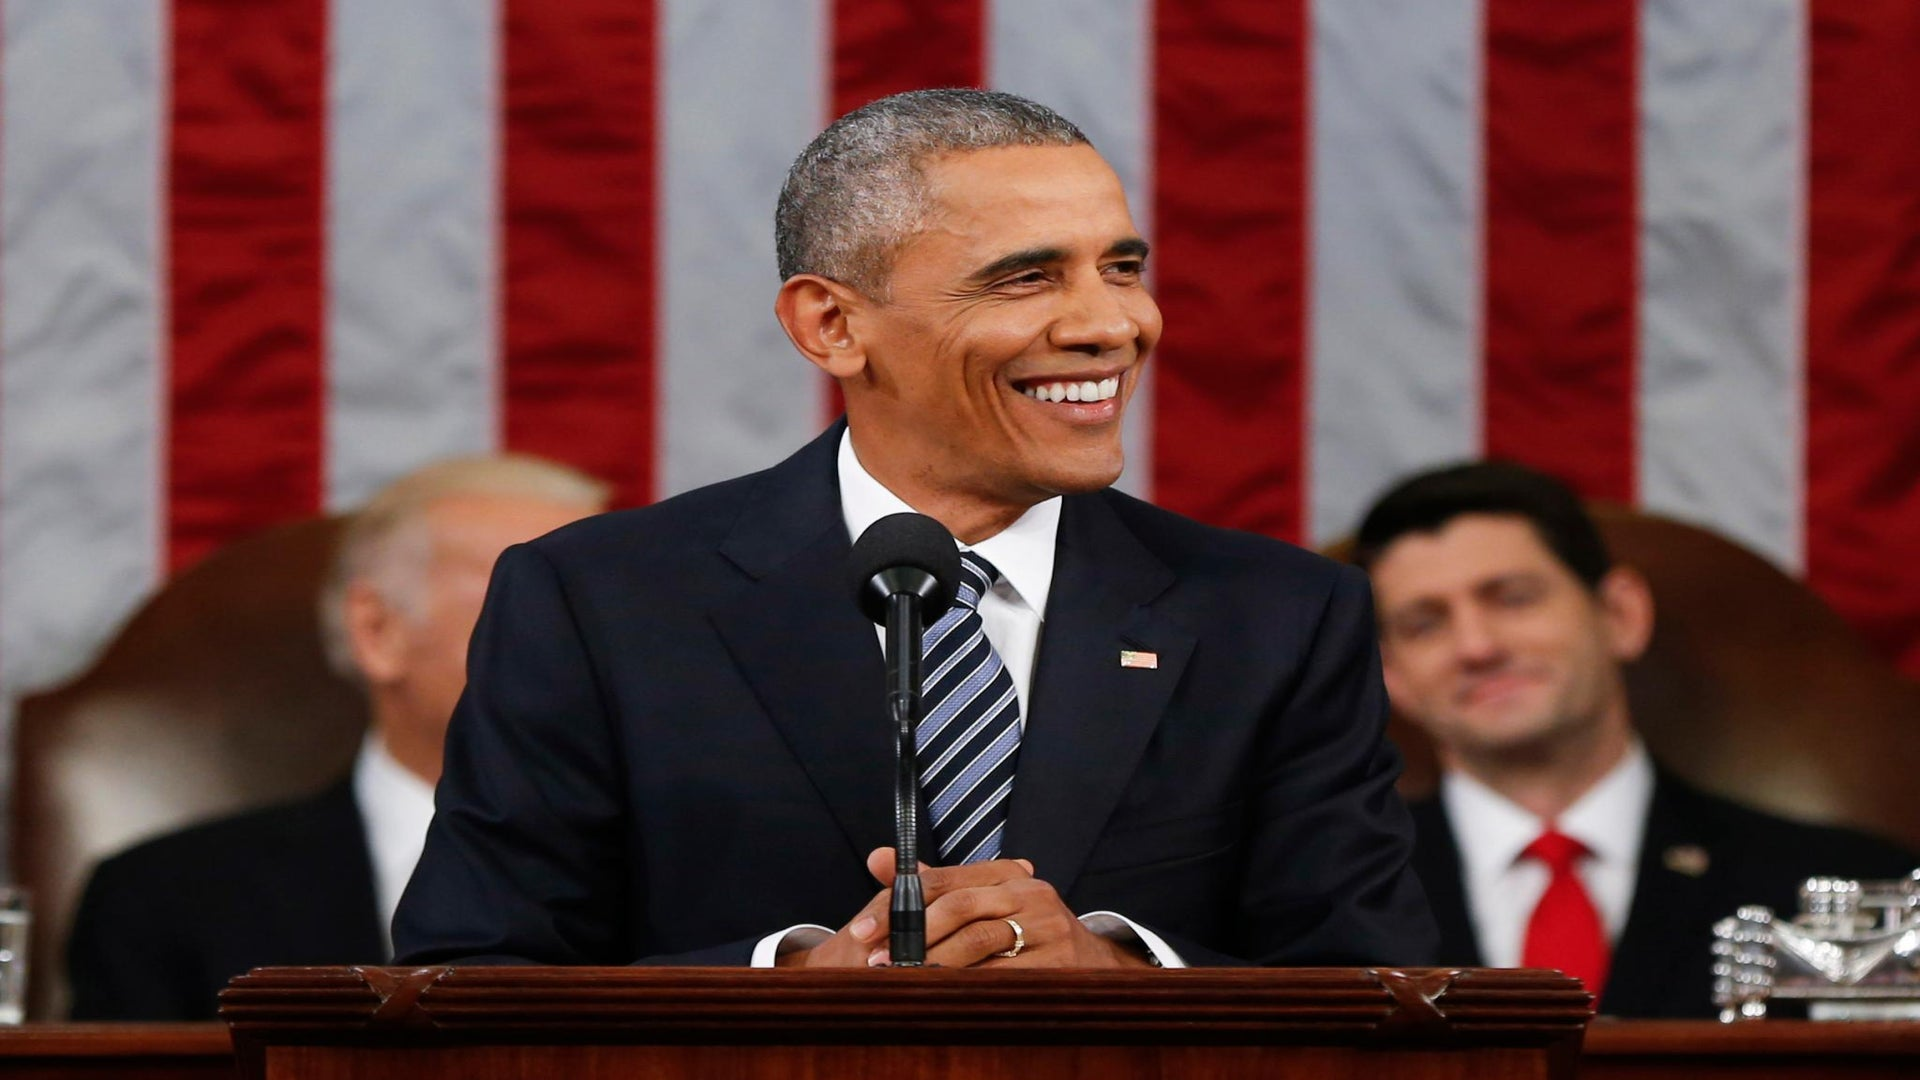 11 Tweets About the State of the Union Guaranteed to Make You LOL